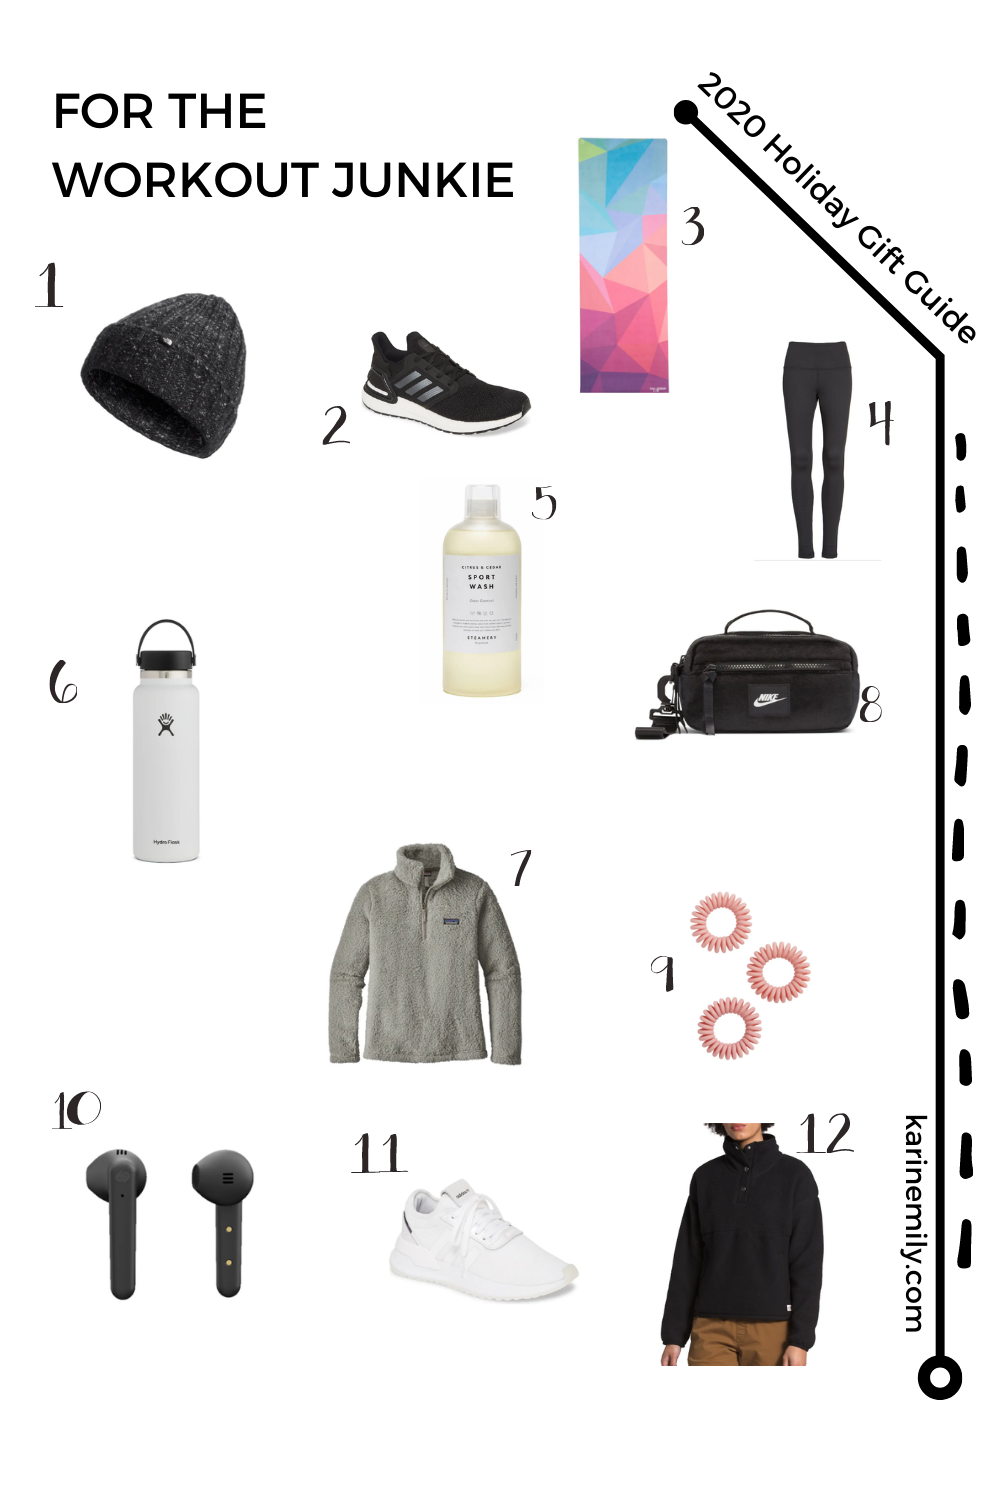 2020 Holiday Gift Guide for the Workout Junkie